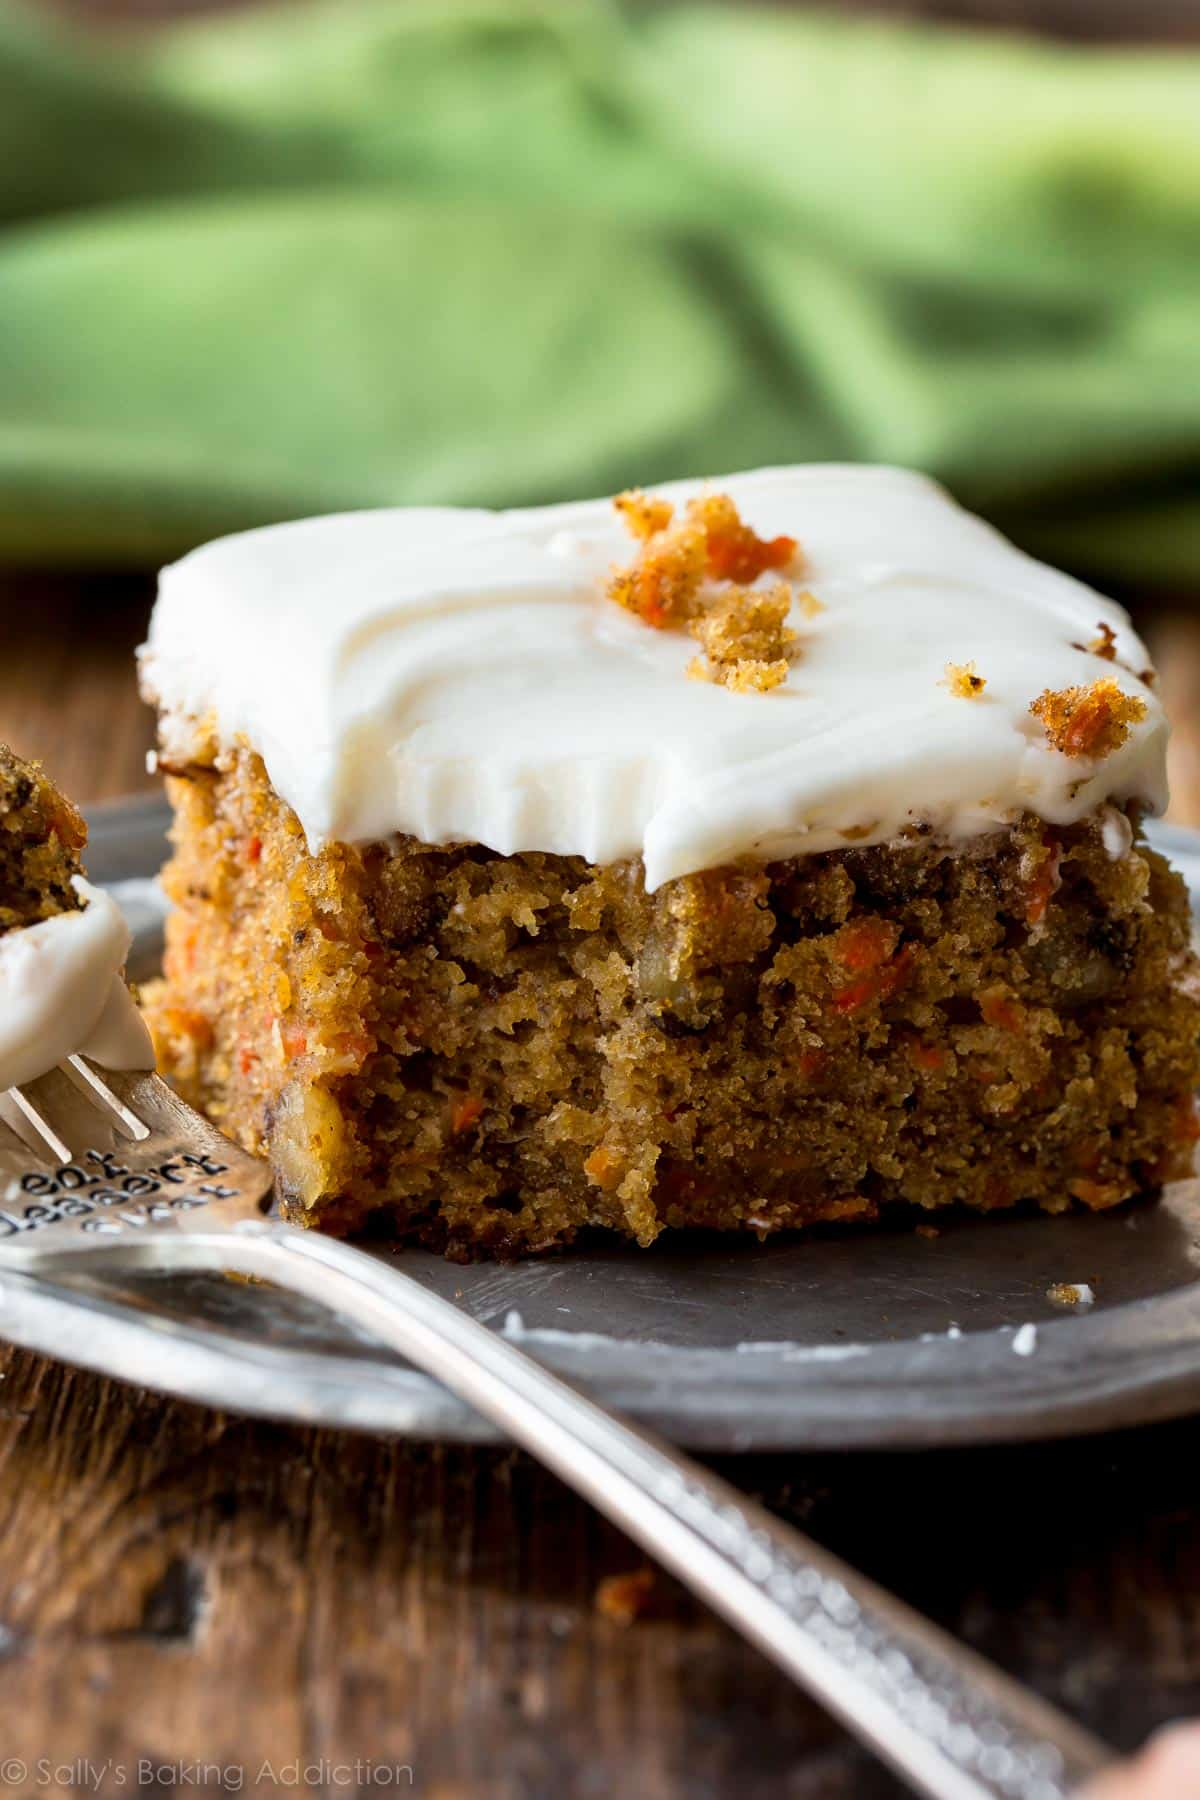 Pineapple carrot cake with cream cheese icing